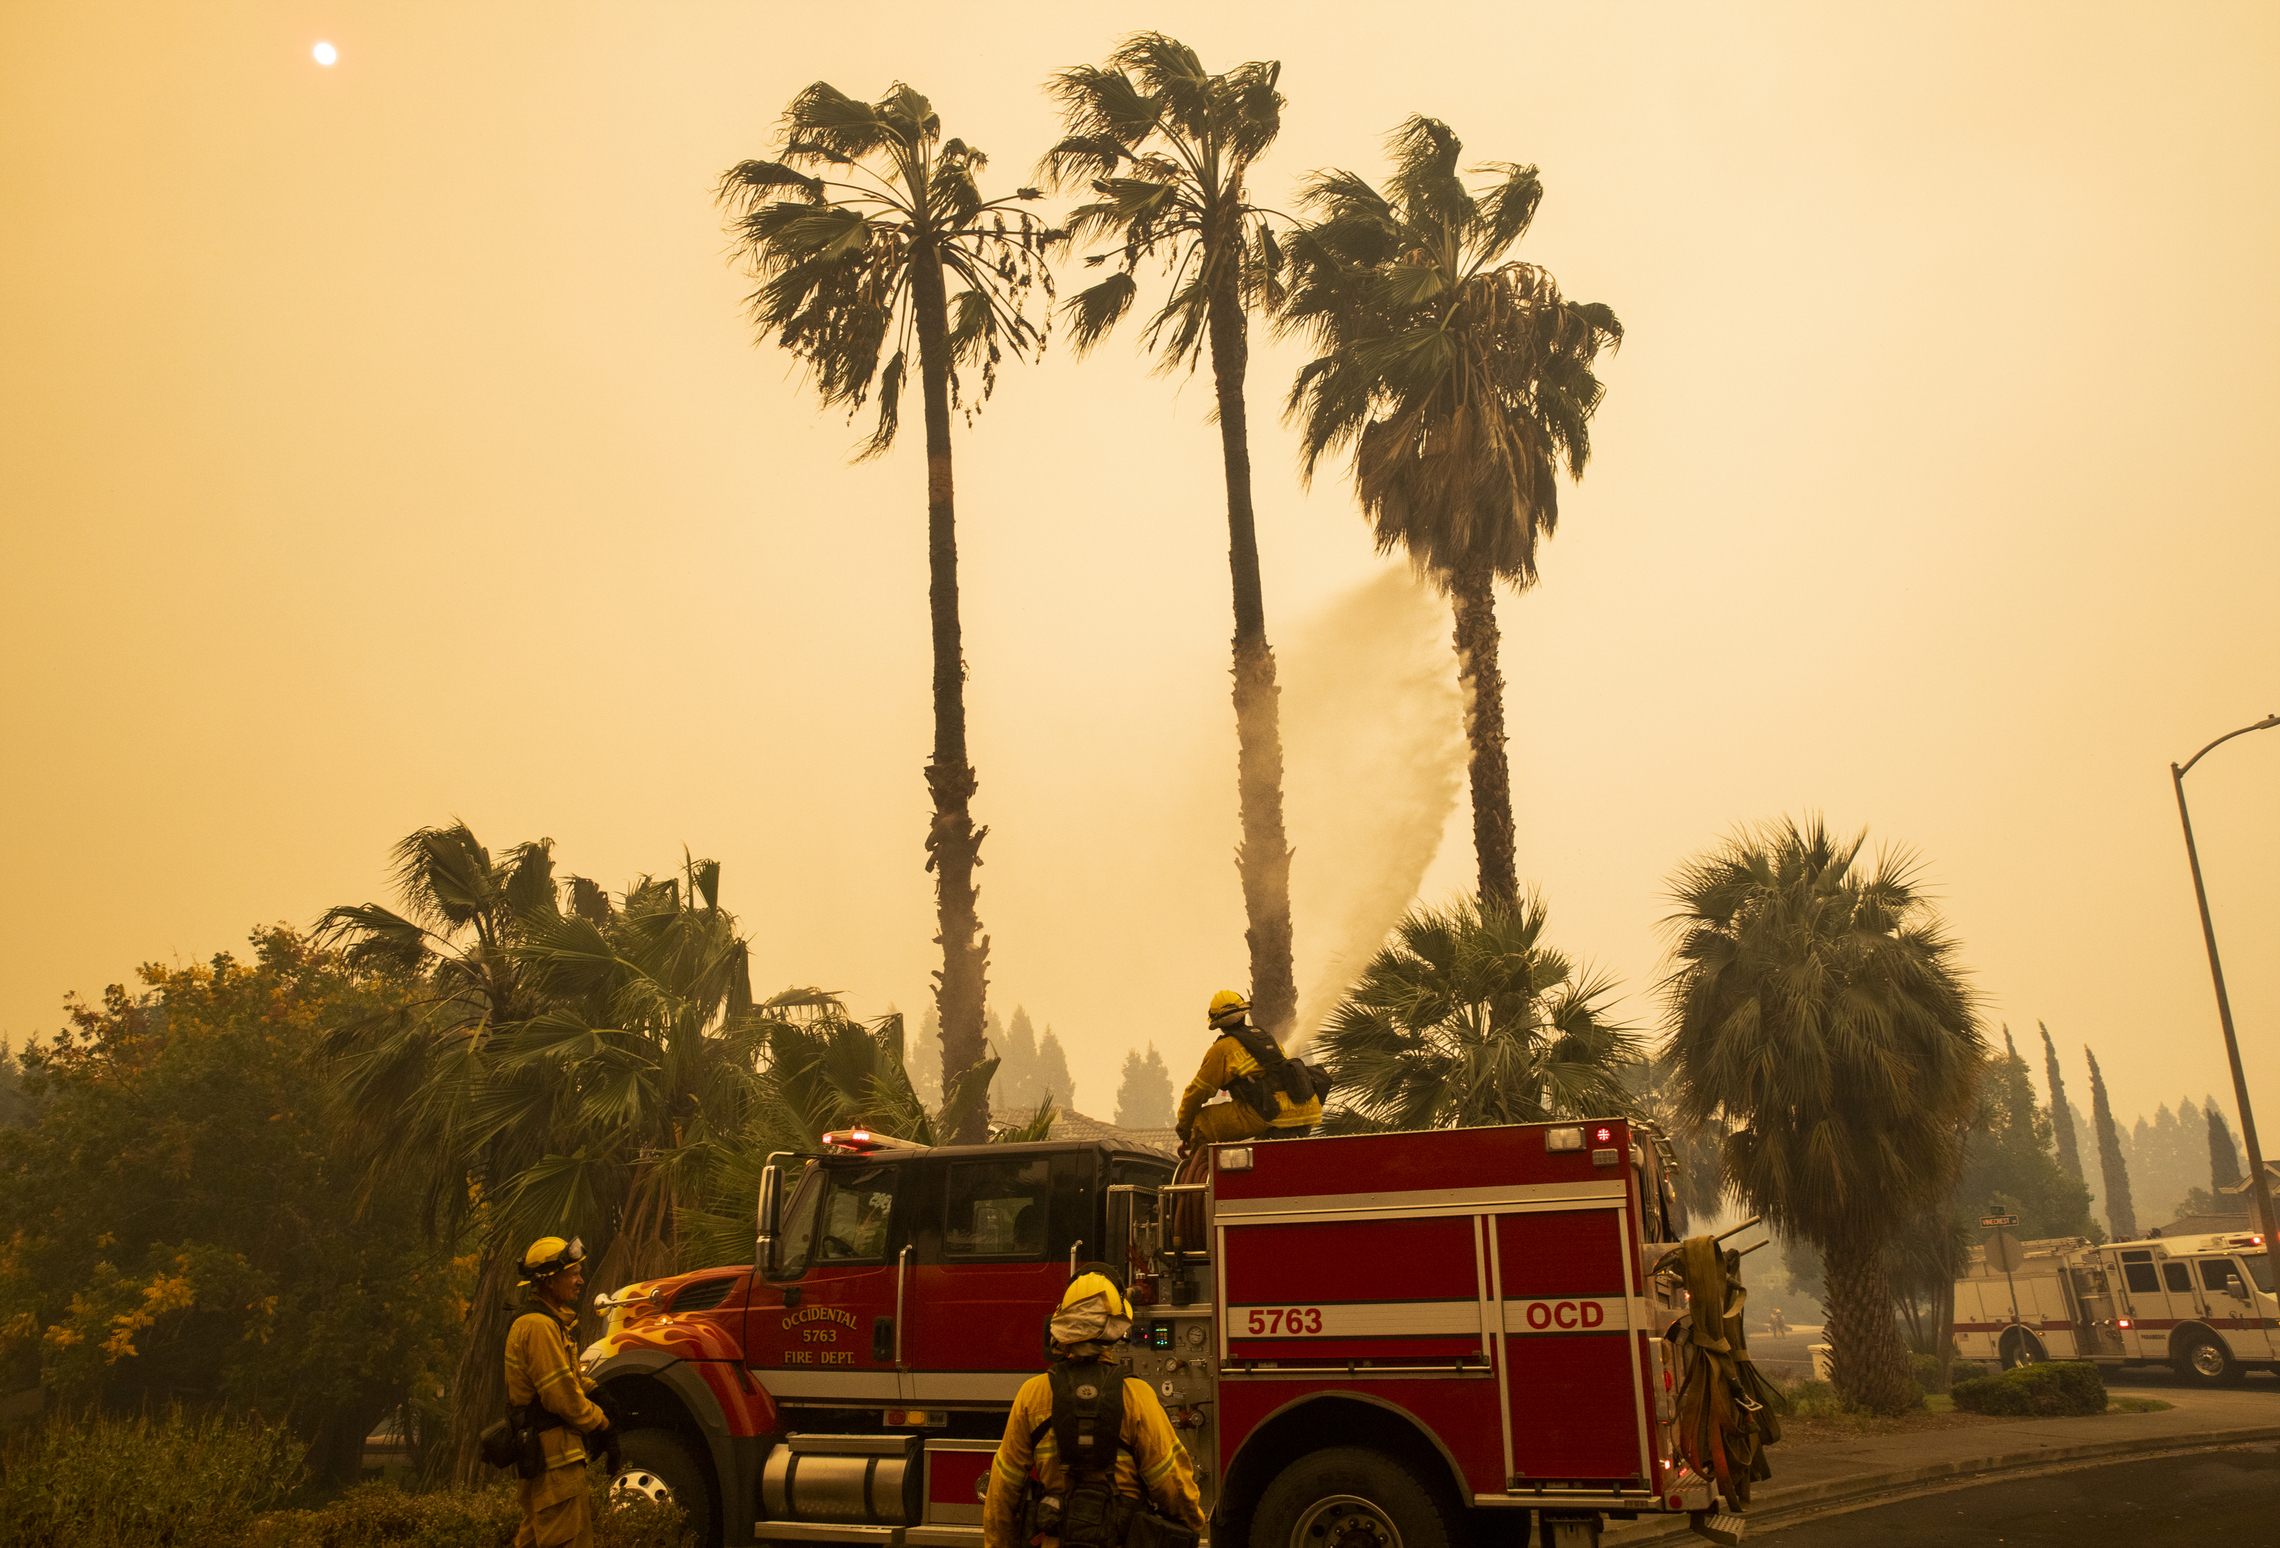 A firefighter standing in front of a fire engine sprays water toward a group of palm trees against a bright orange sky.